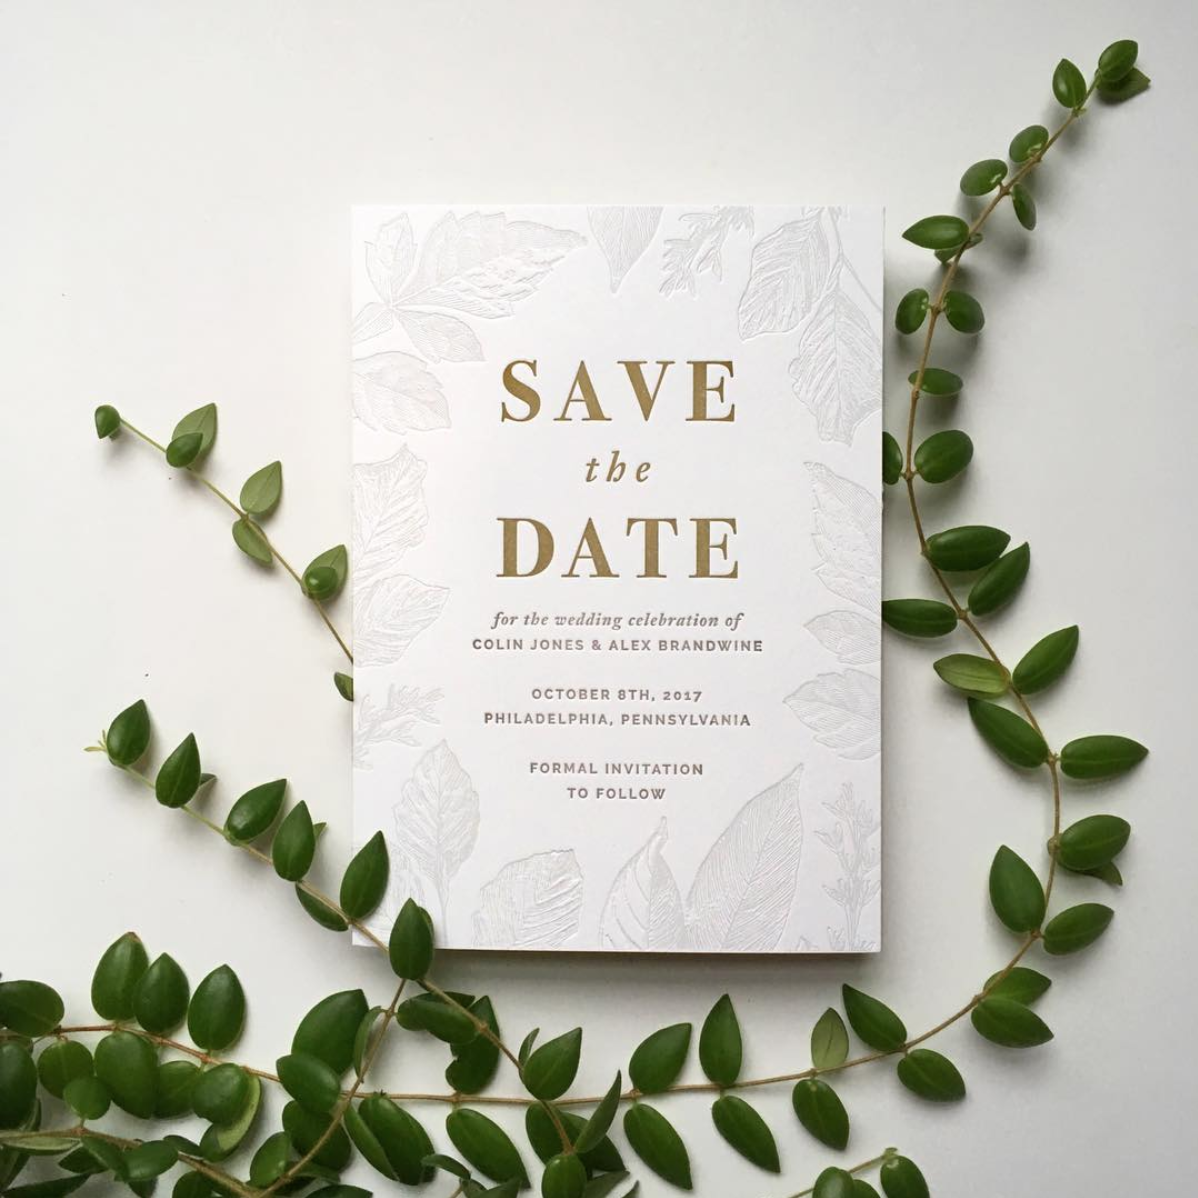 A custom Save the Date created for an Igloo Letterpress client.